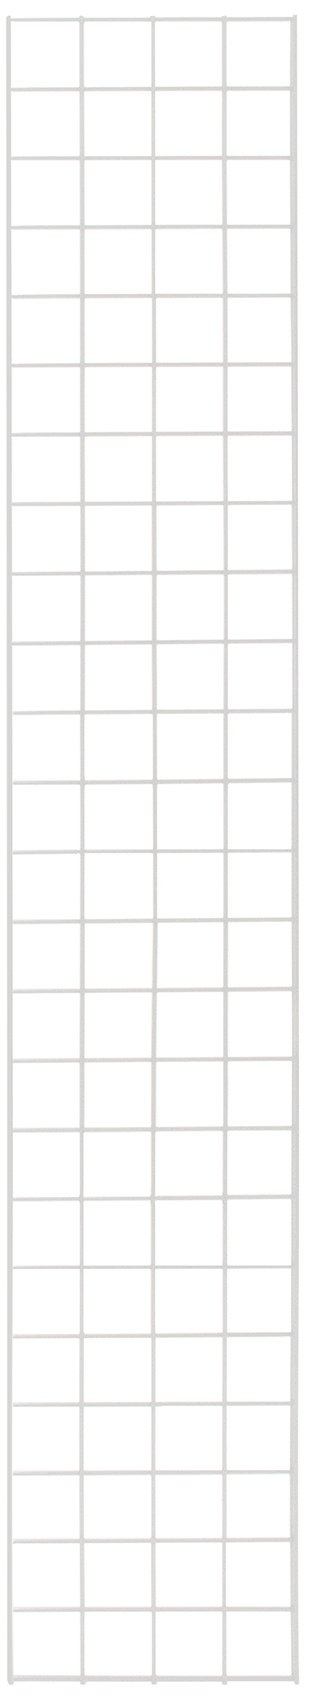 KC Store Fixtures A04238 Gridwall Panel, 1' W x 6' H, White (Pack of 4)